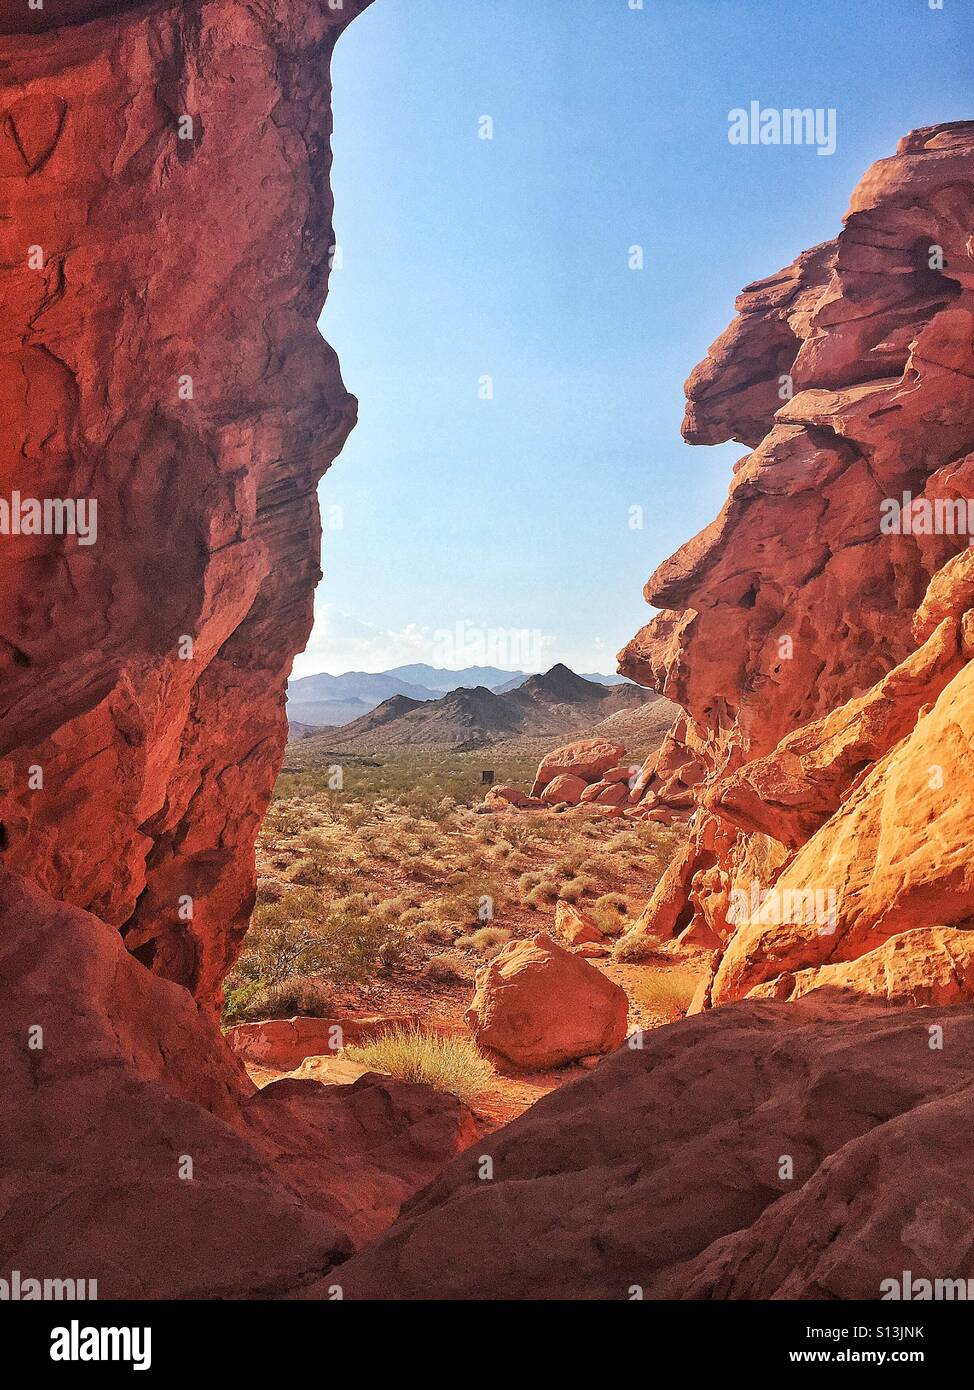 Red rocks - Stock Image